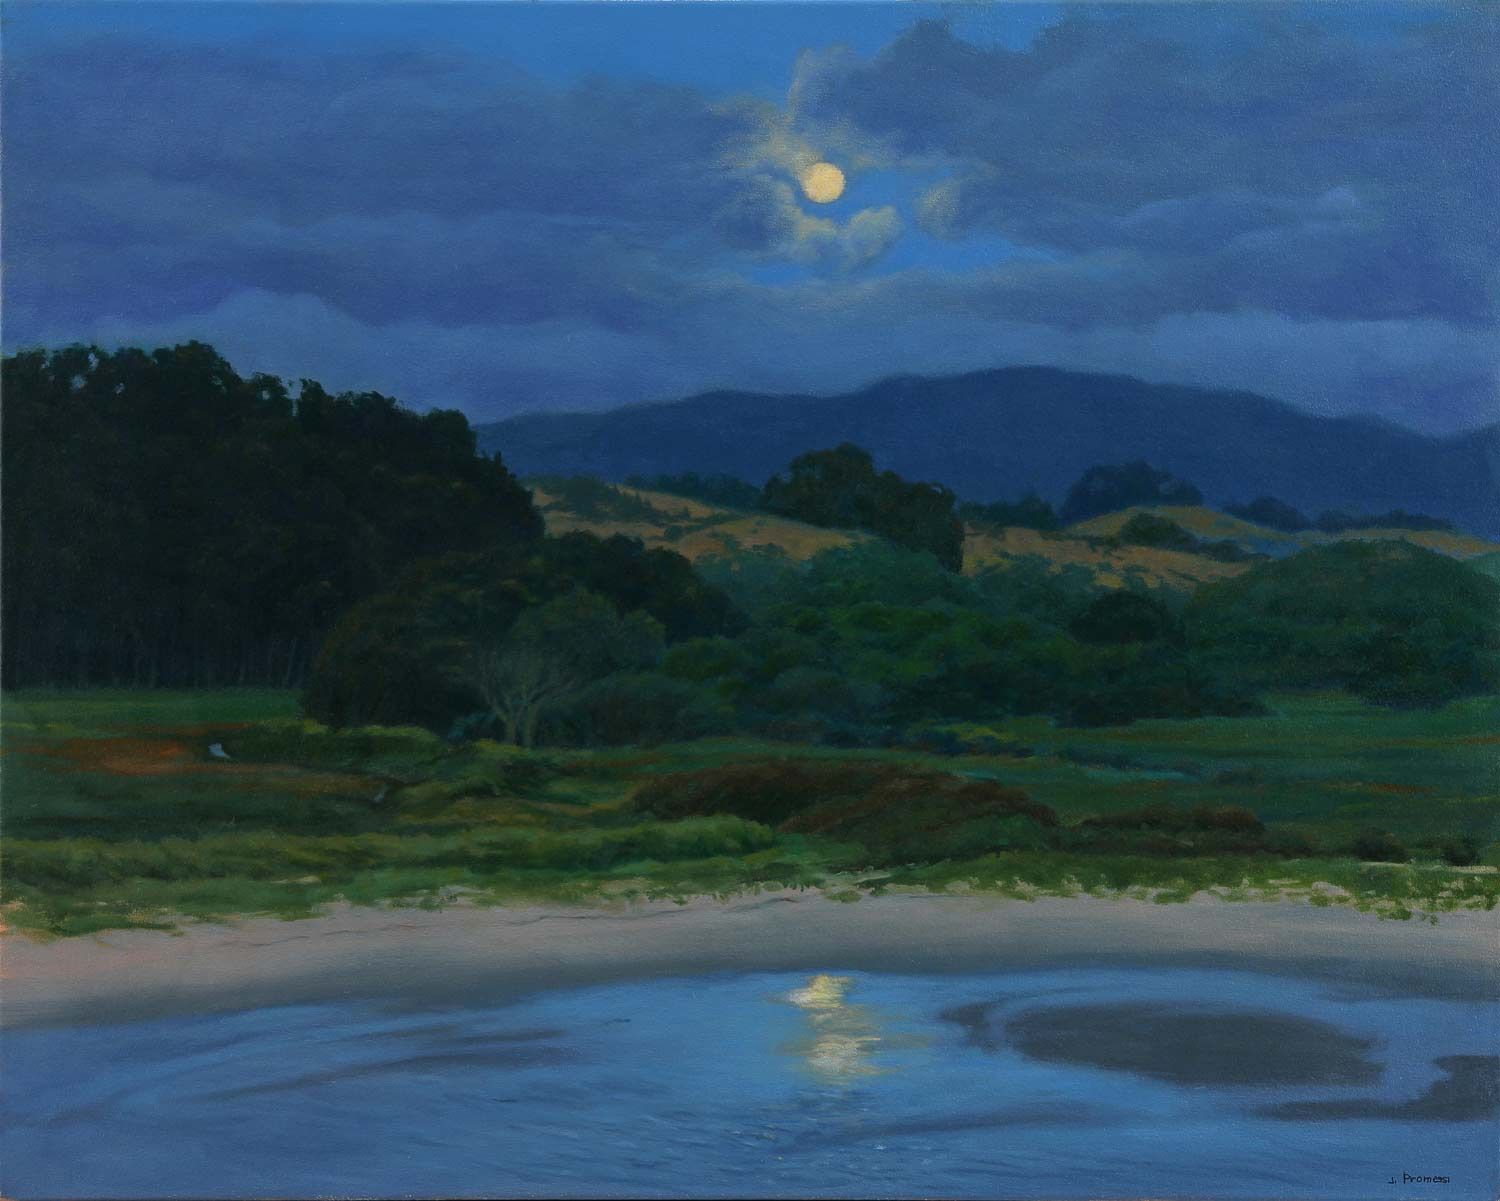 Pescadero Marsh Nature Preserve, painting by Promessi